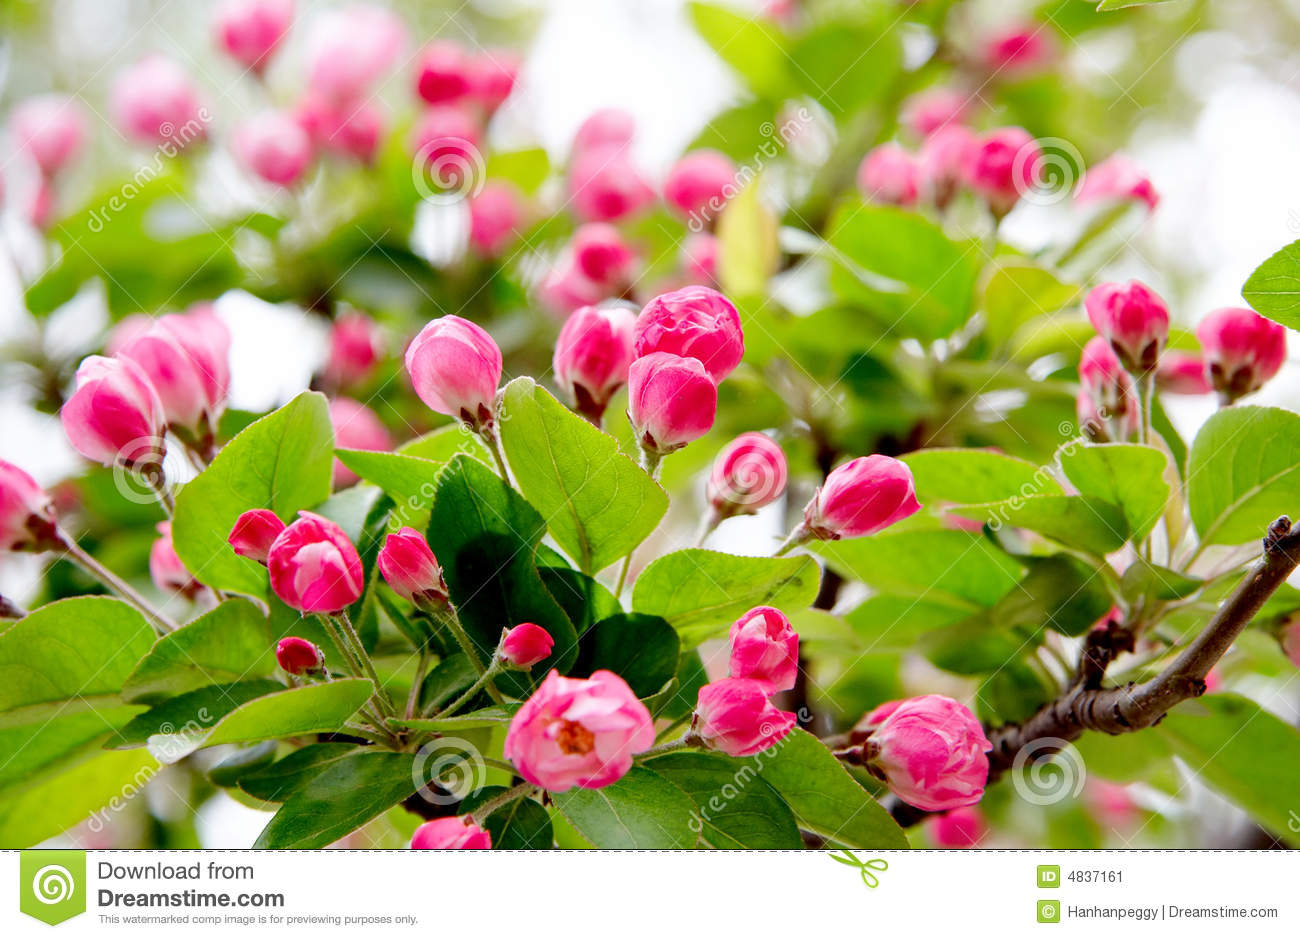 Spring flowers buds stock image image of blooming colored 4837161 spring flowers buds mightylinksfo